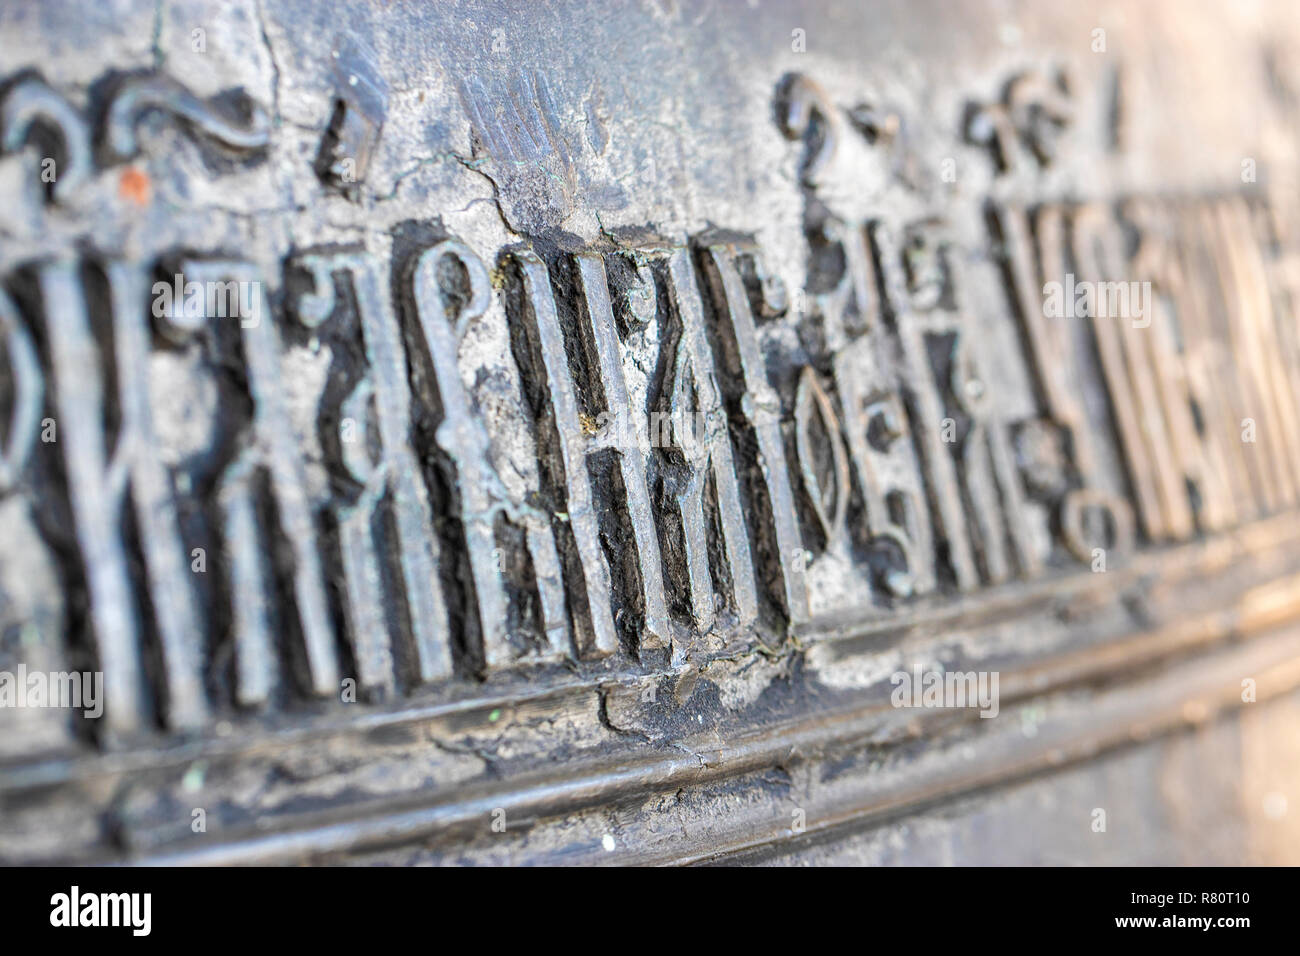 Close-up of ancient Slavic letters on ancient bronze bell in orthodox church in Rostov the Great - Stock Image